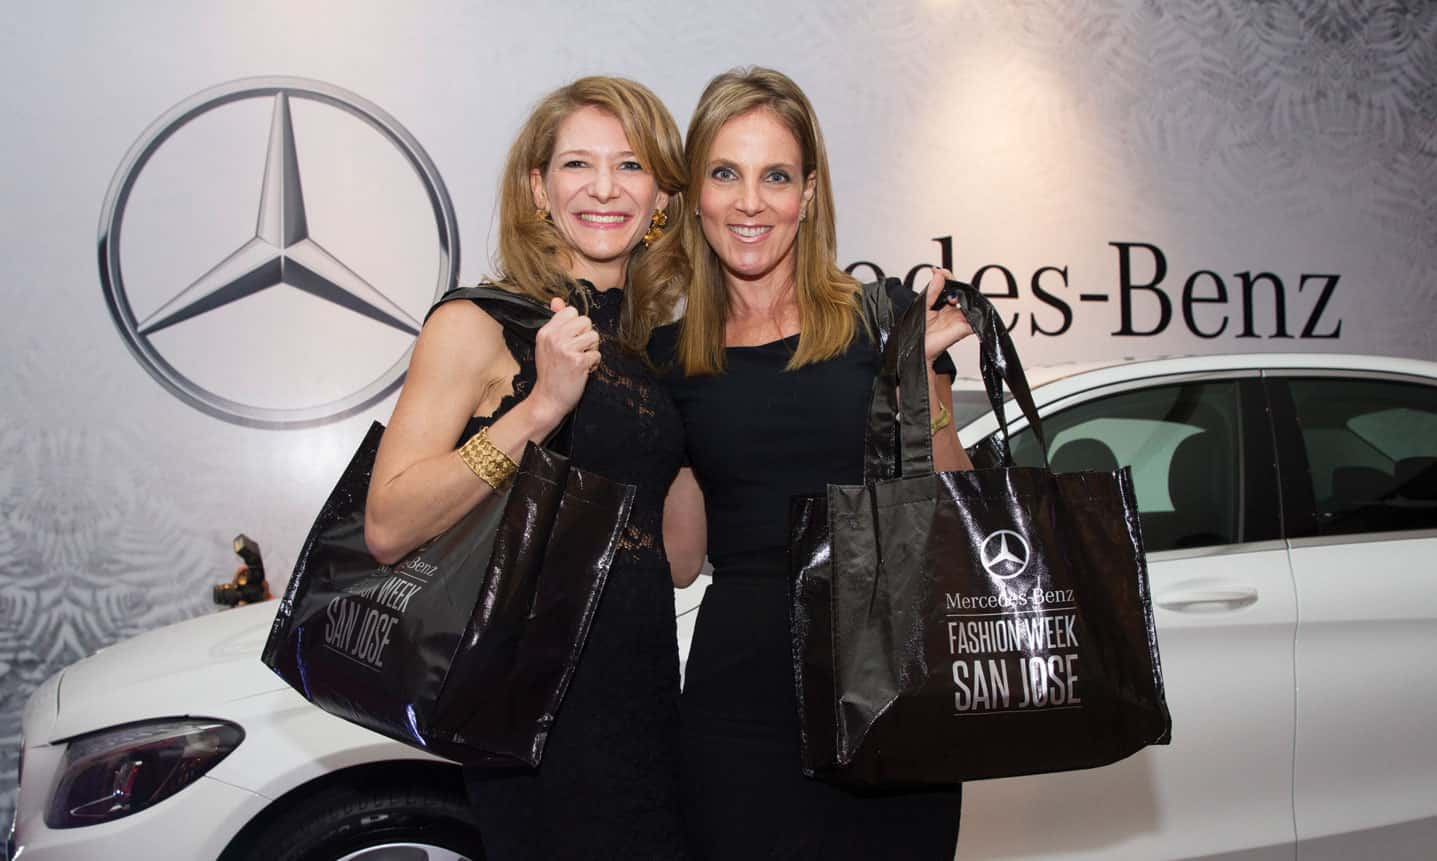 Mercedes-Benz Fashion Week San José 2015